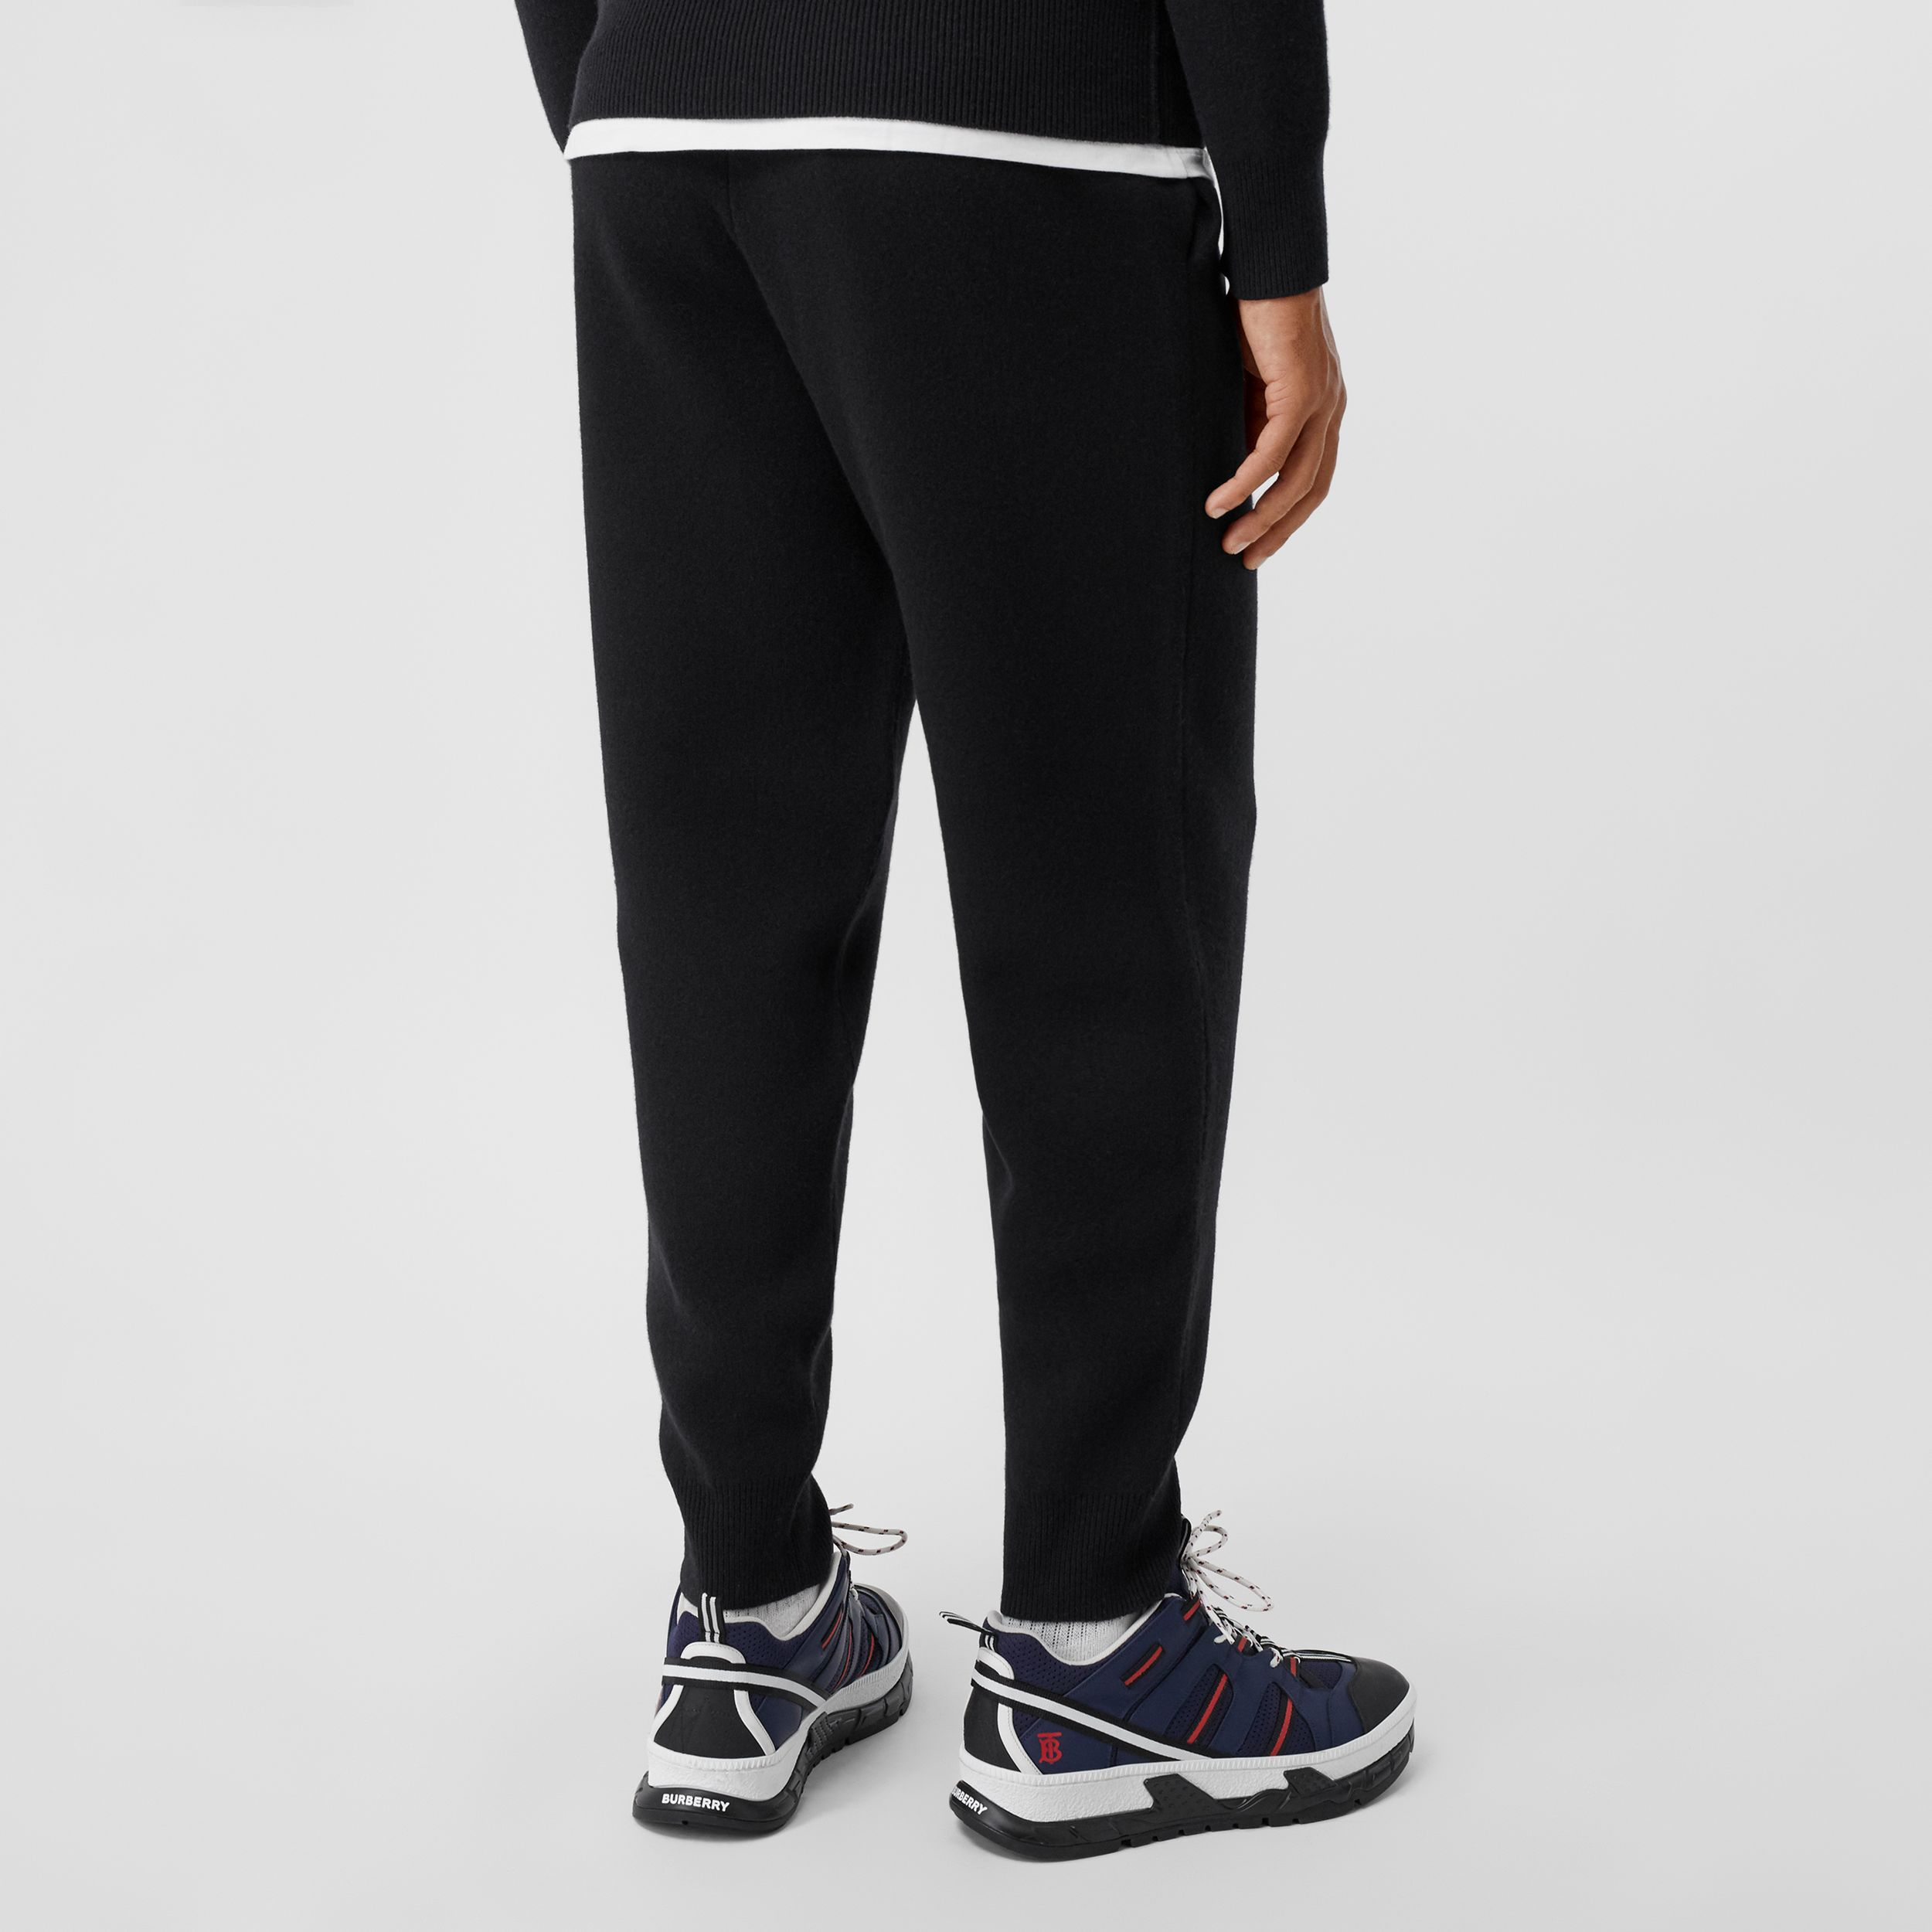 Monogram Motif Cashmere Blend Trackpants in Black - Men | Burberry - 3